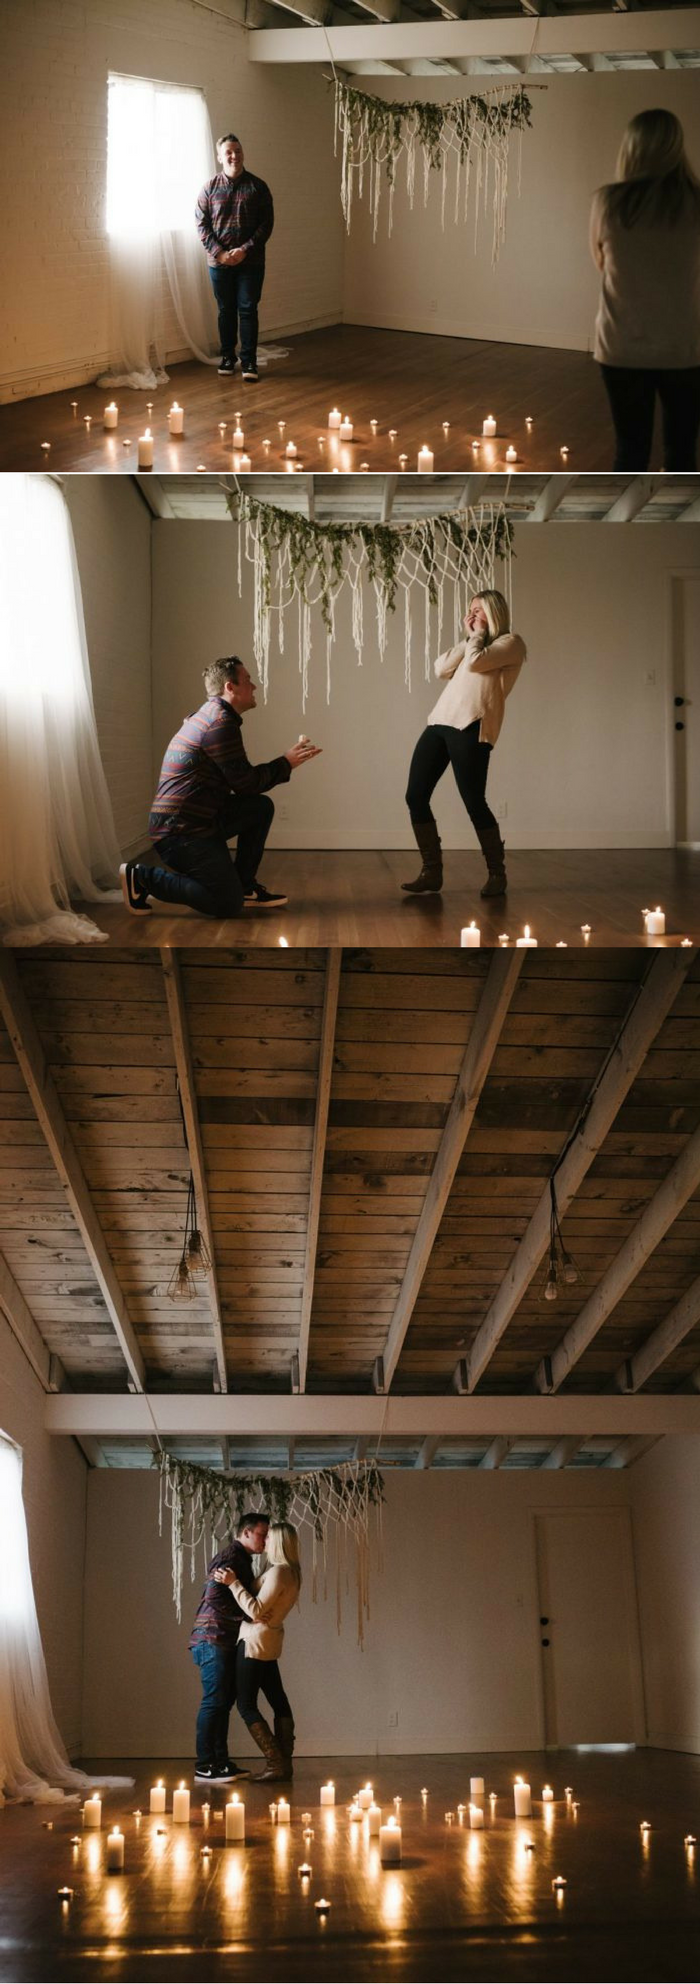 This surprise proposal is the definition of romantic! She had no idea he was waiting at the studio to propose, and every detail is perfect.